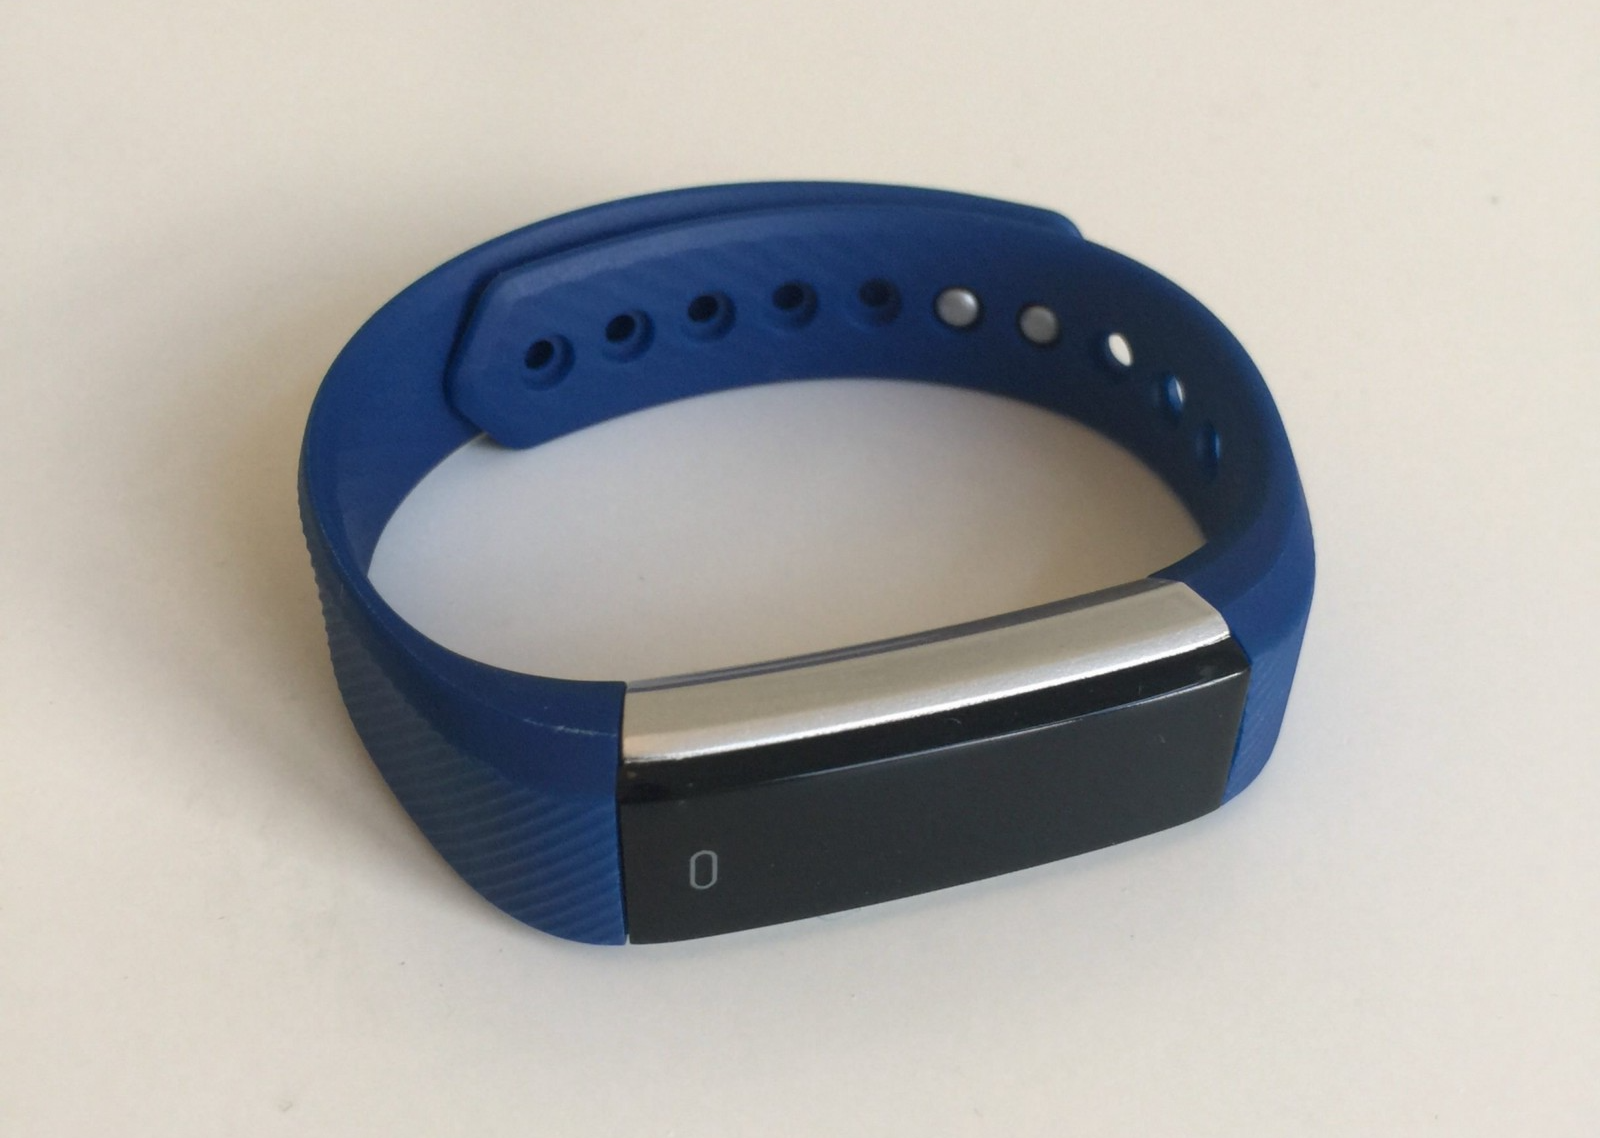 That S Exactly What Raphael Baron Has Done With His Incredible Work On Hacking A Fitness Tracker Bracelet